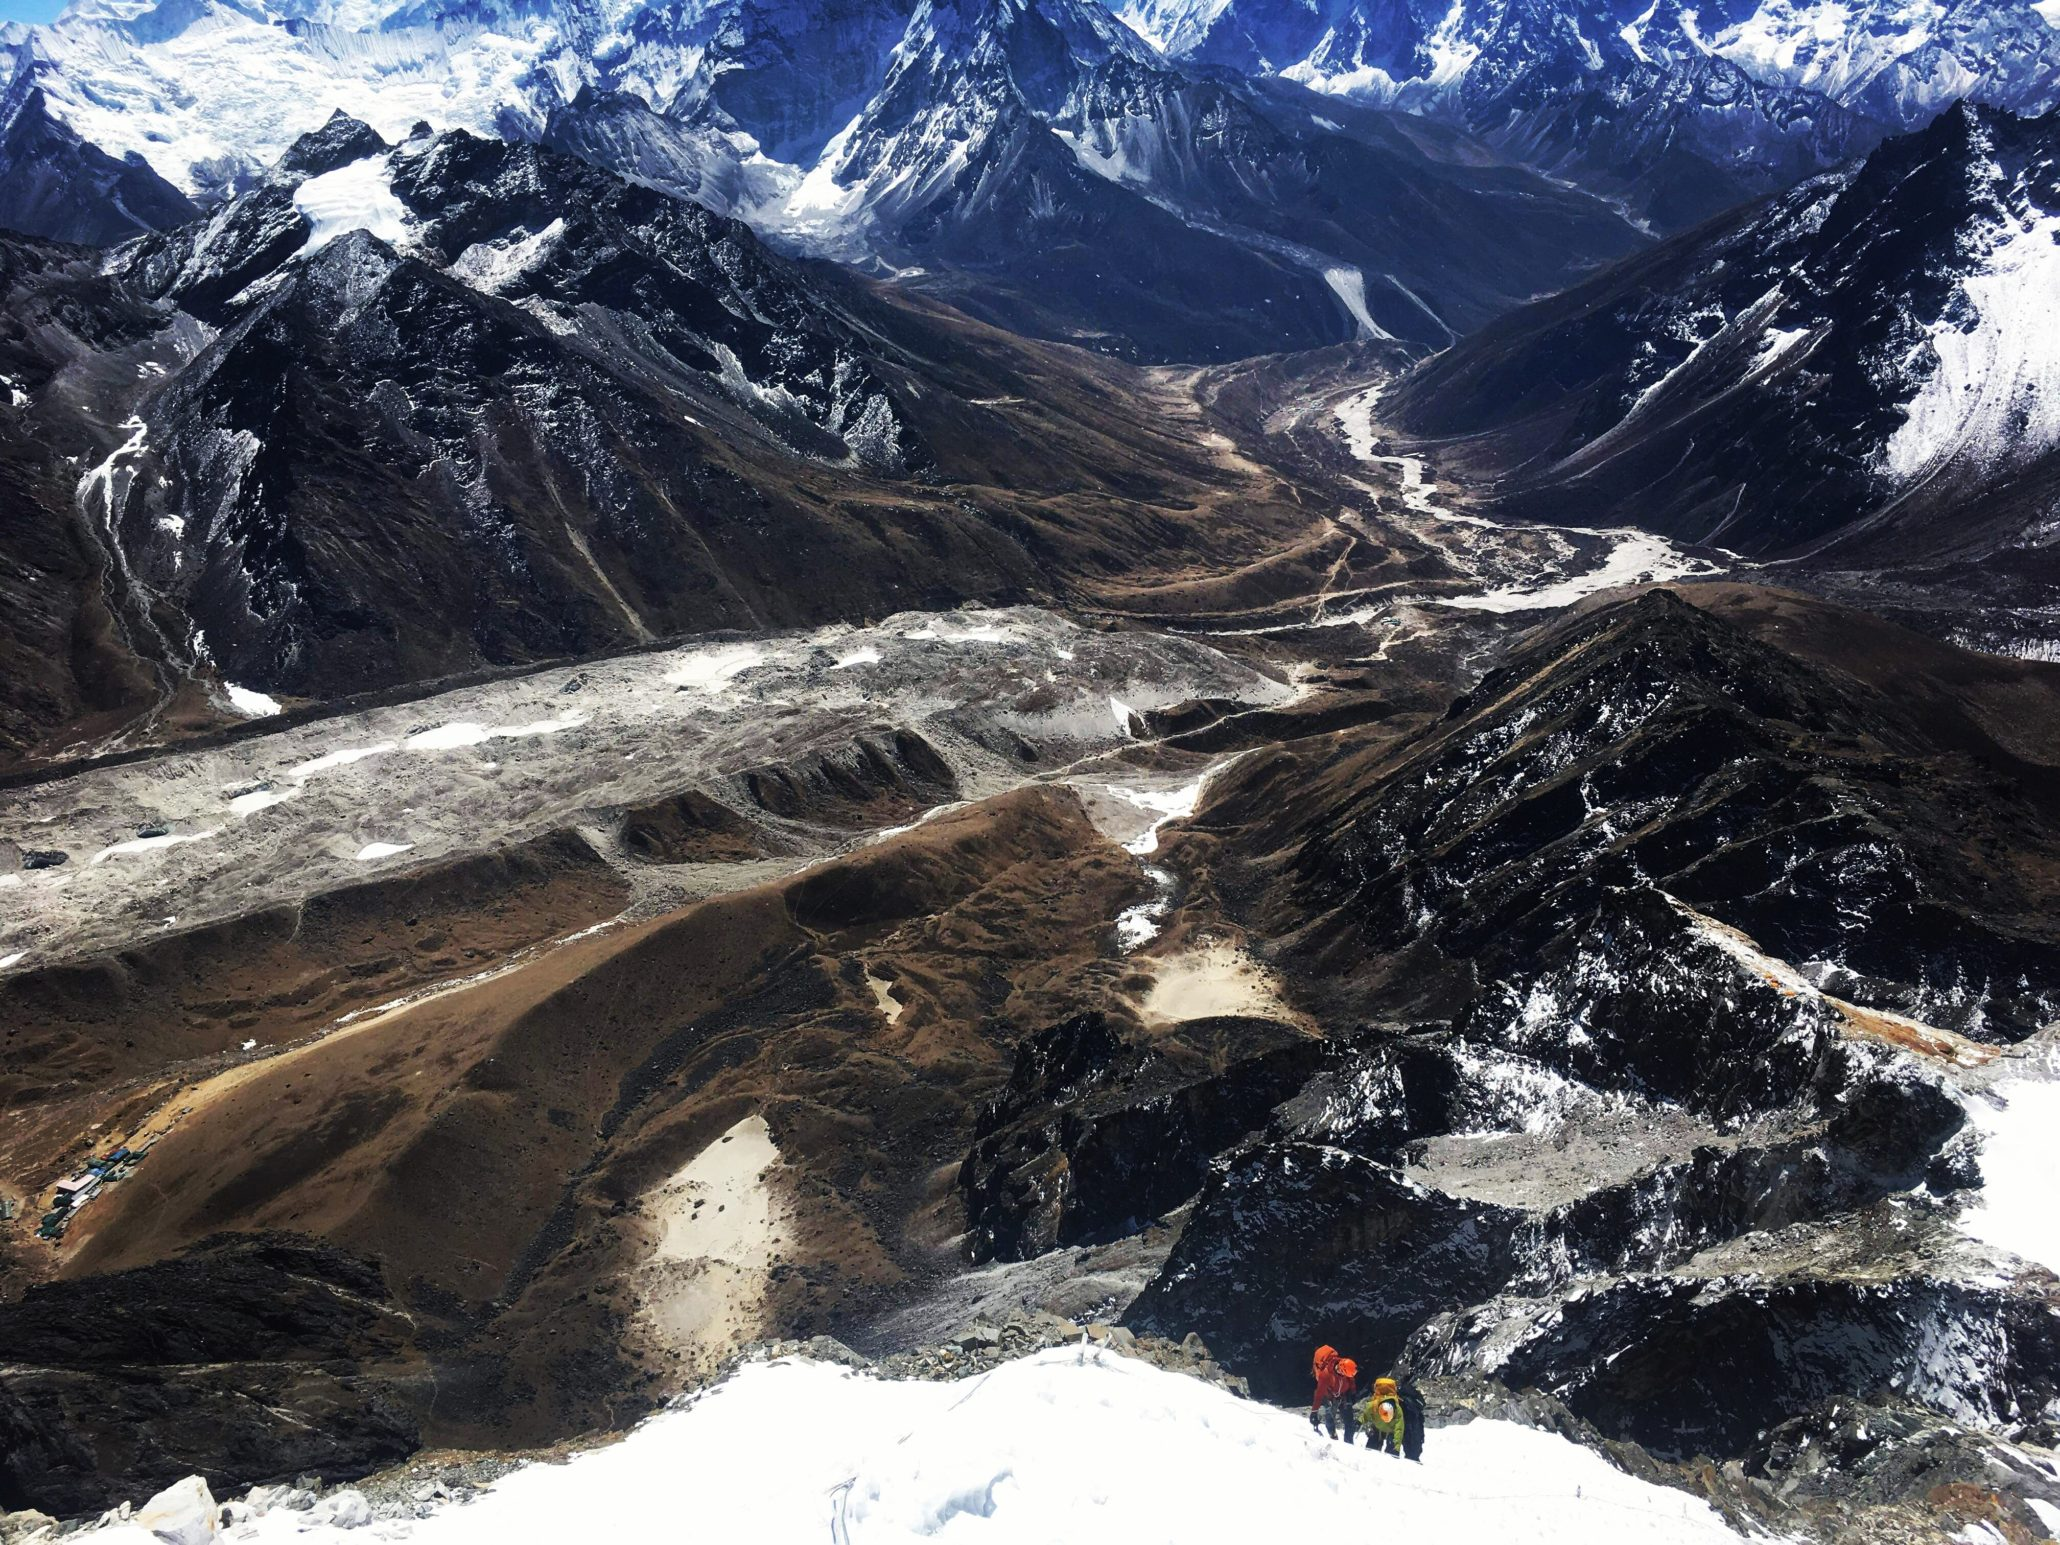 summit view of himalayan mountains